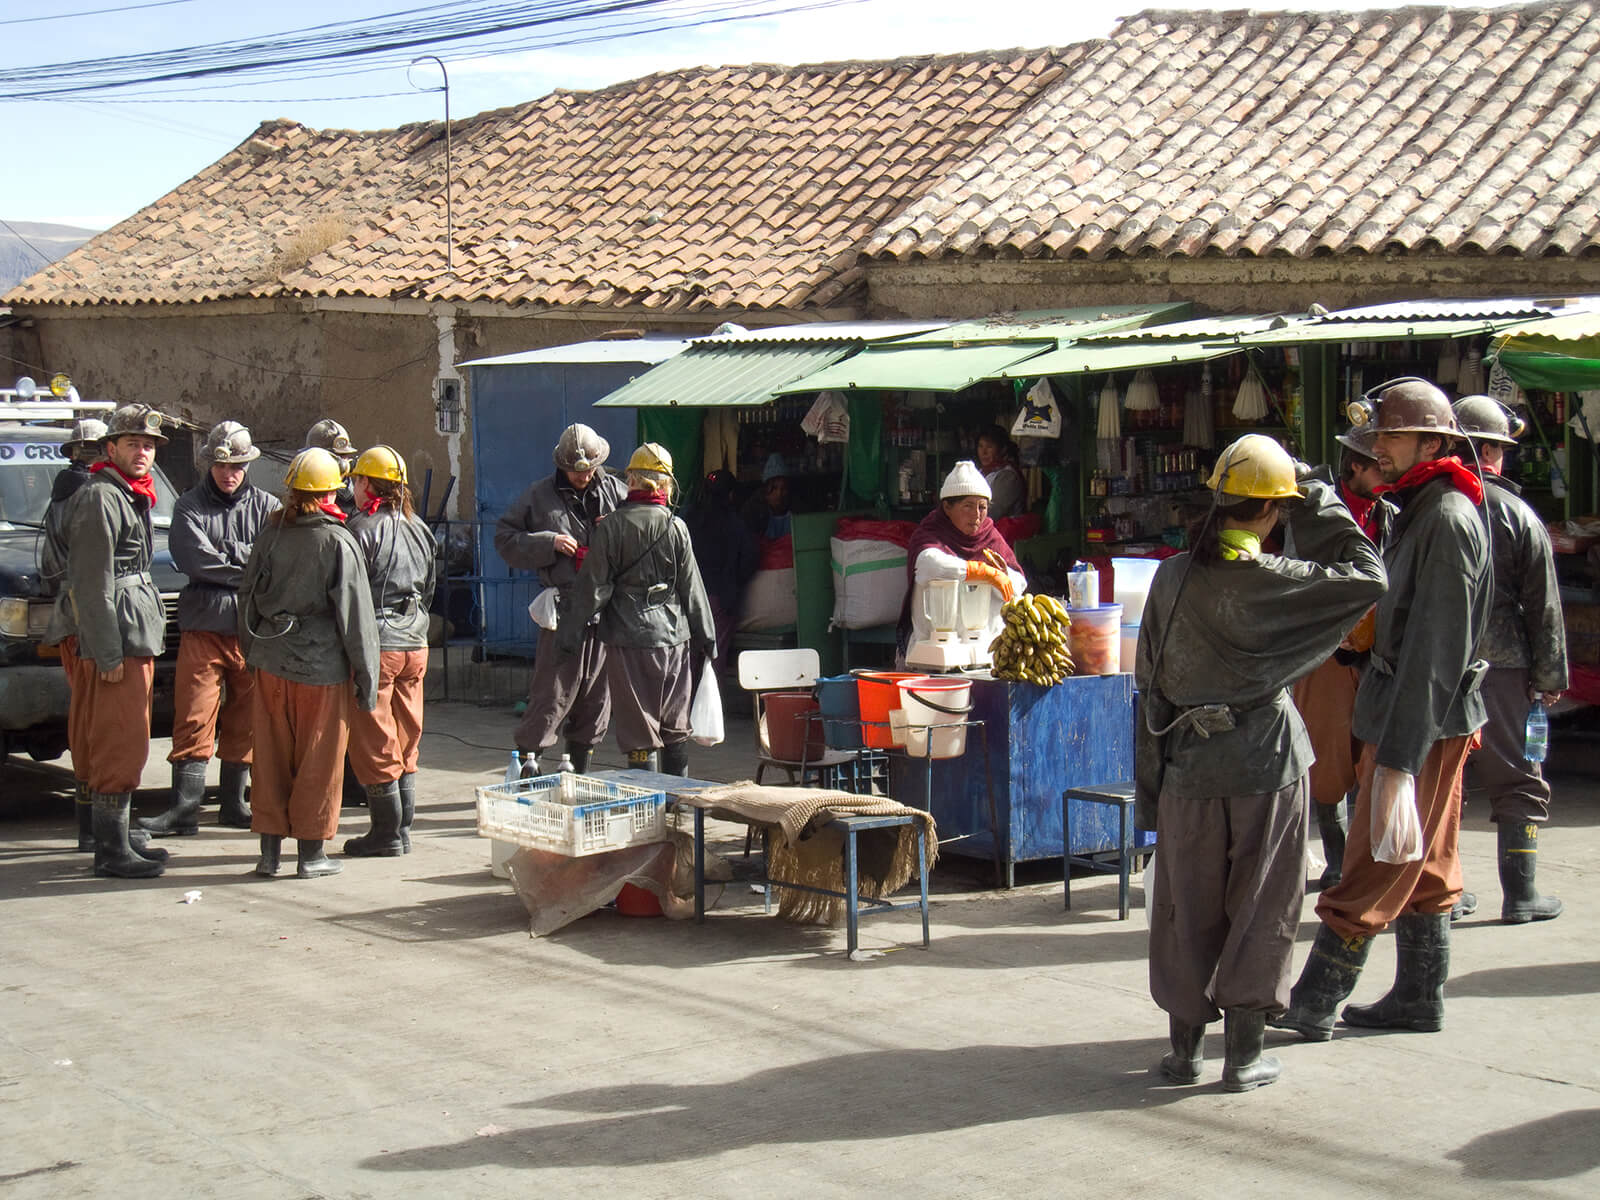 Preparing for our mine tour at Potosi Miners Market in Bolivia